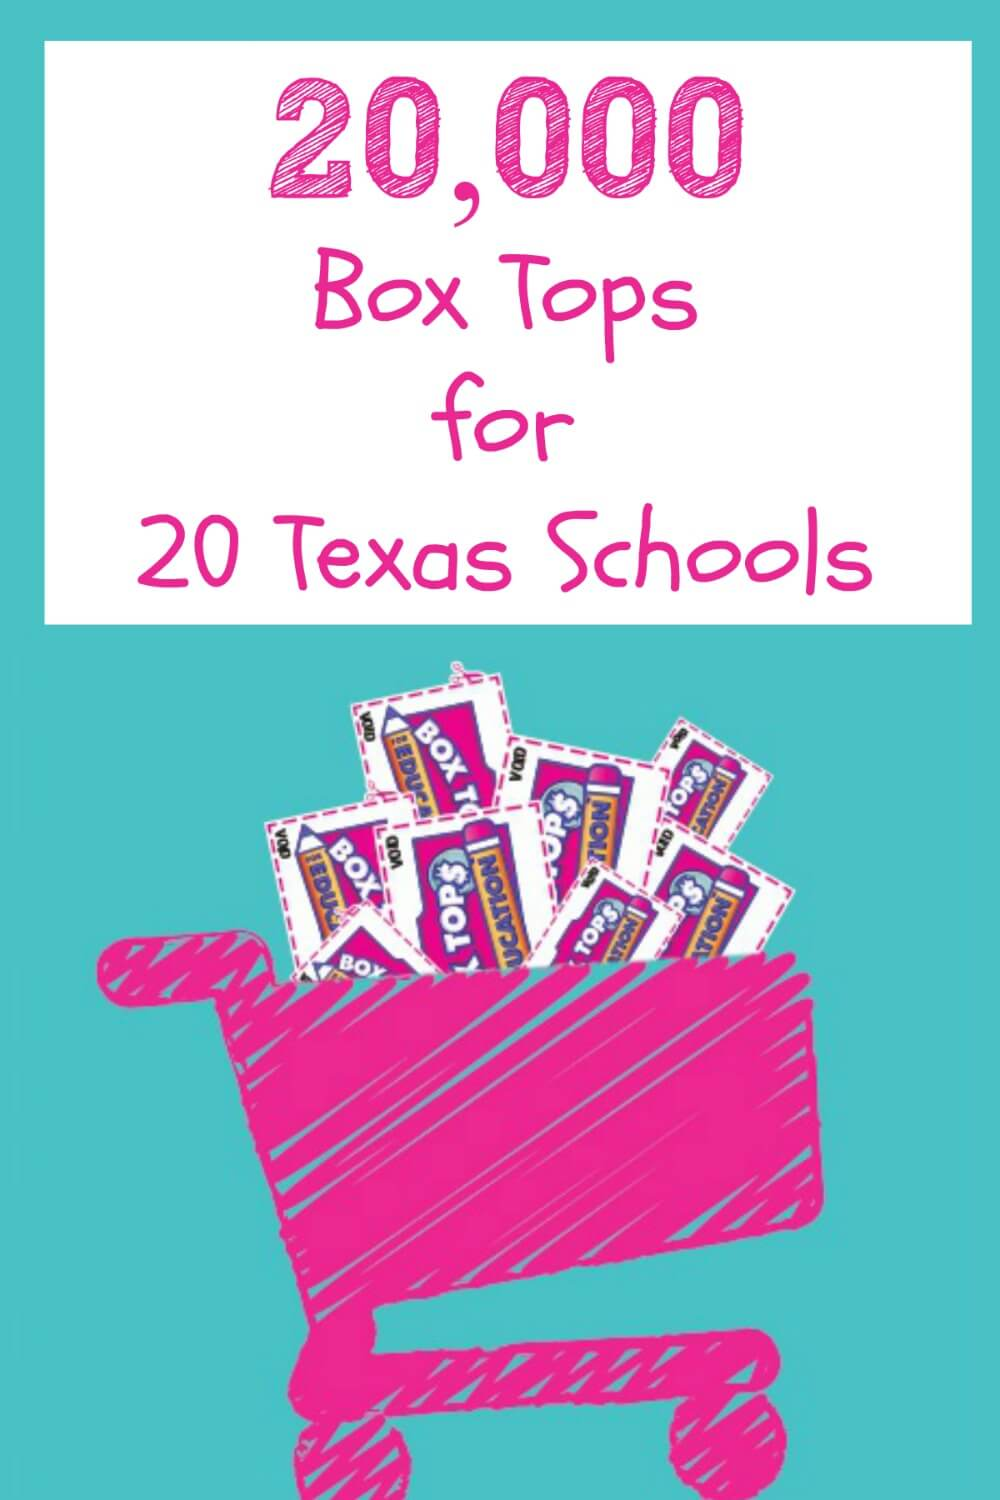 Texas parents! See how to #win 20K #BoxTopsforEducation for your School! #ad #sweepstakes